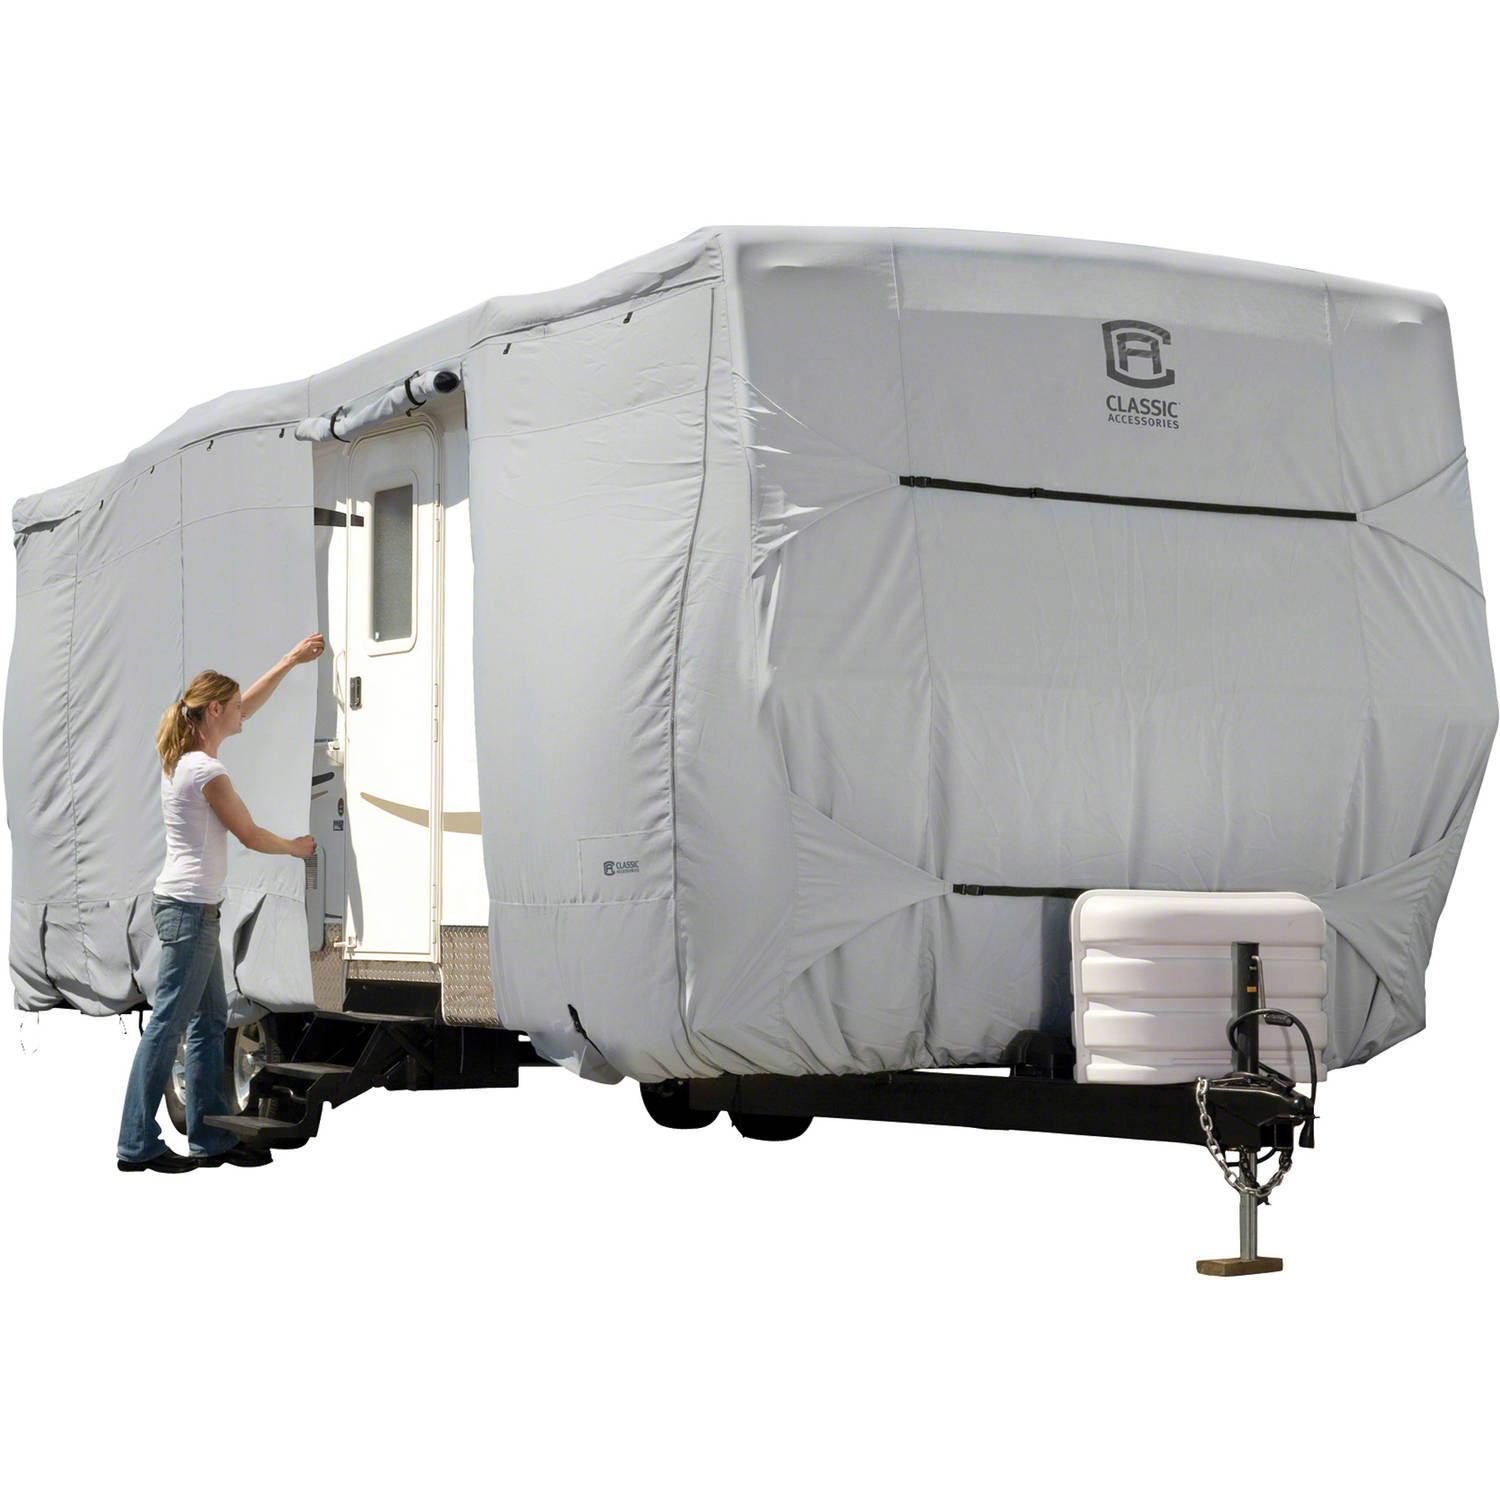 Classic Accessories OverDrive PermaPRO Deluxe Travel Trailer Cover, Fits 18' - 40' RVs - Lightweight Ripstop and Water Repellent RV Cover